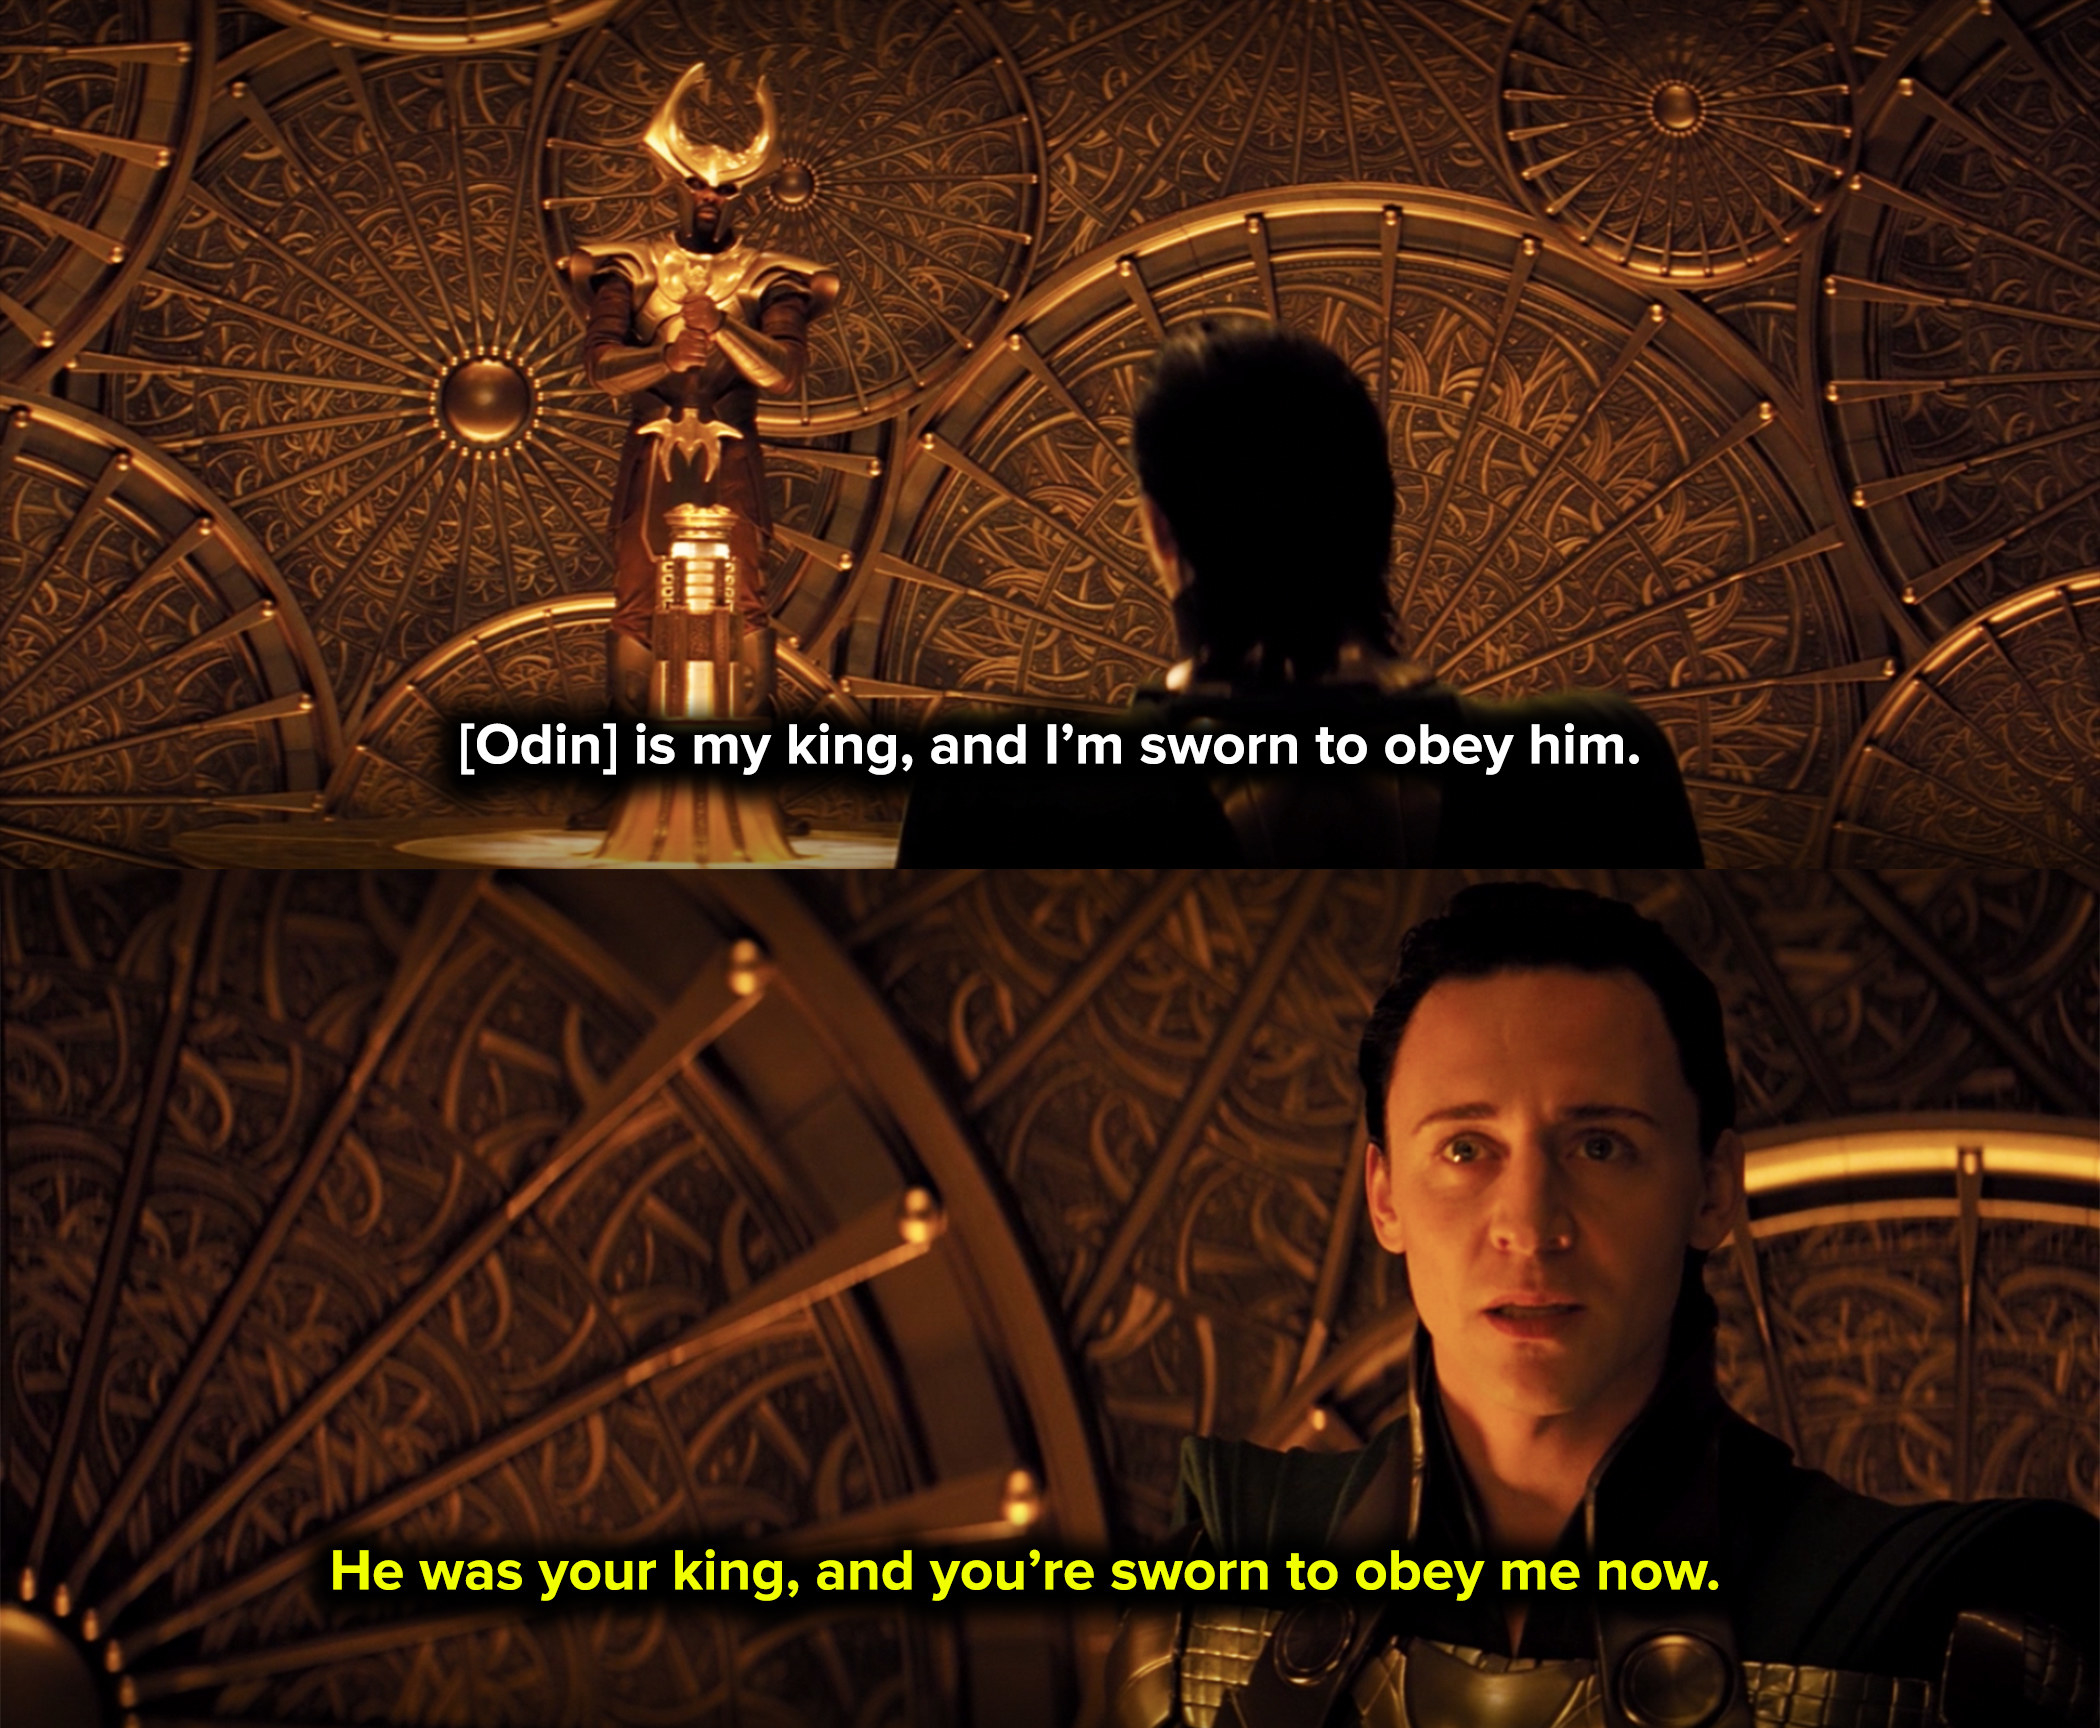 Loki tells Heimdel that he's sworn to obey his new king